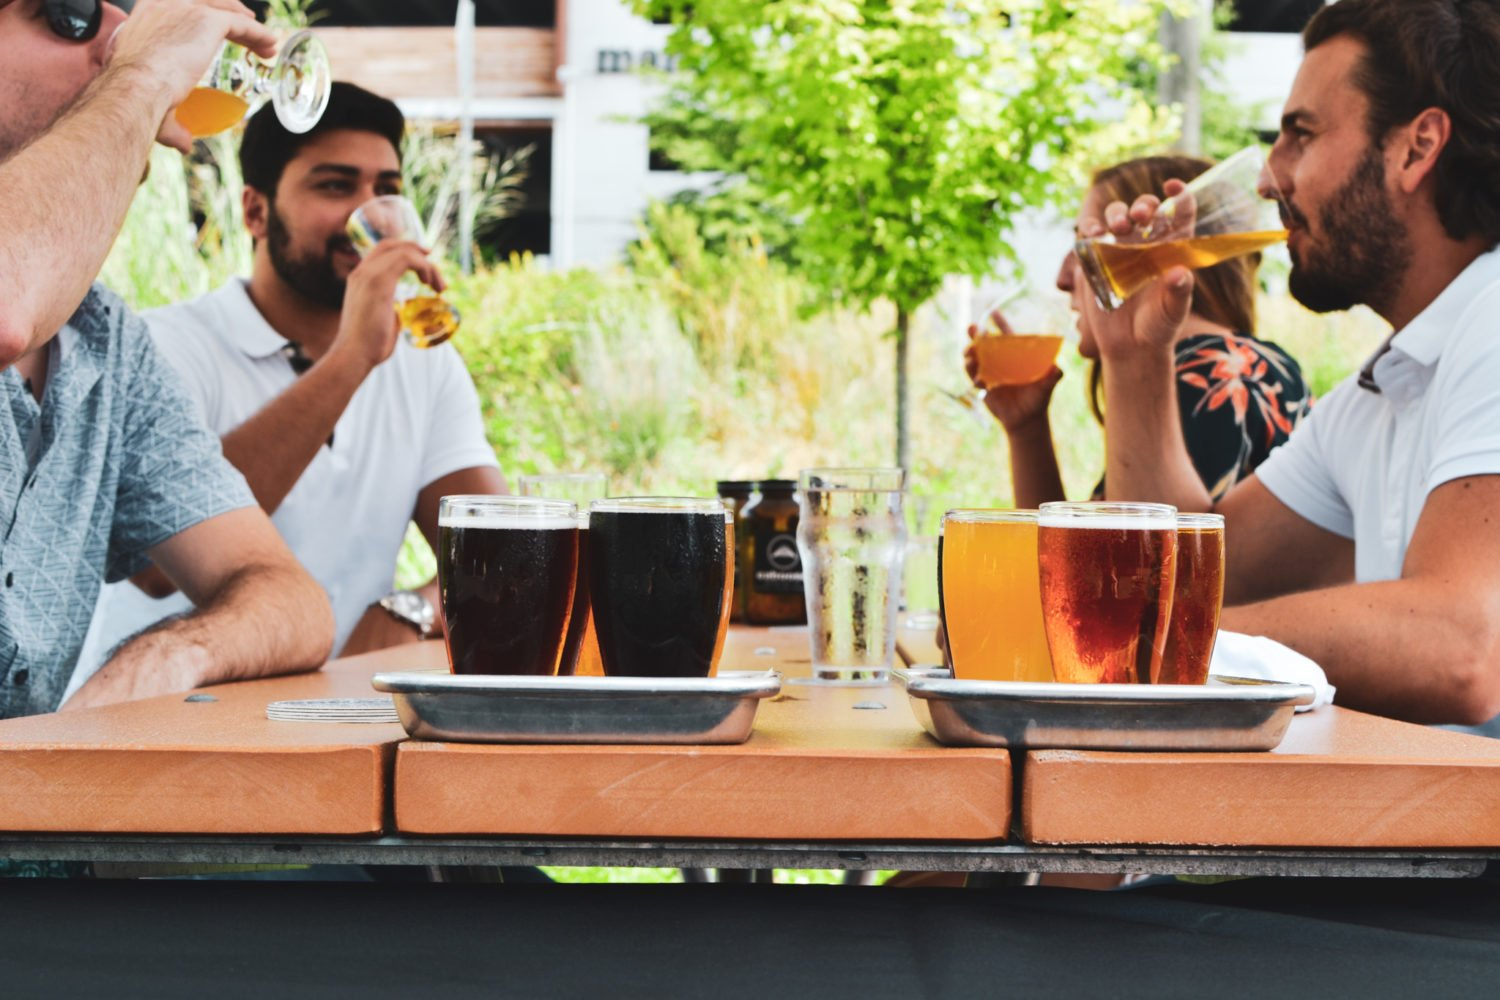 Sample beers from DC-area breweries at Caboose Commons' Springfest. Photo courtesy of Caboose Commons.